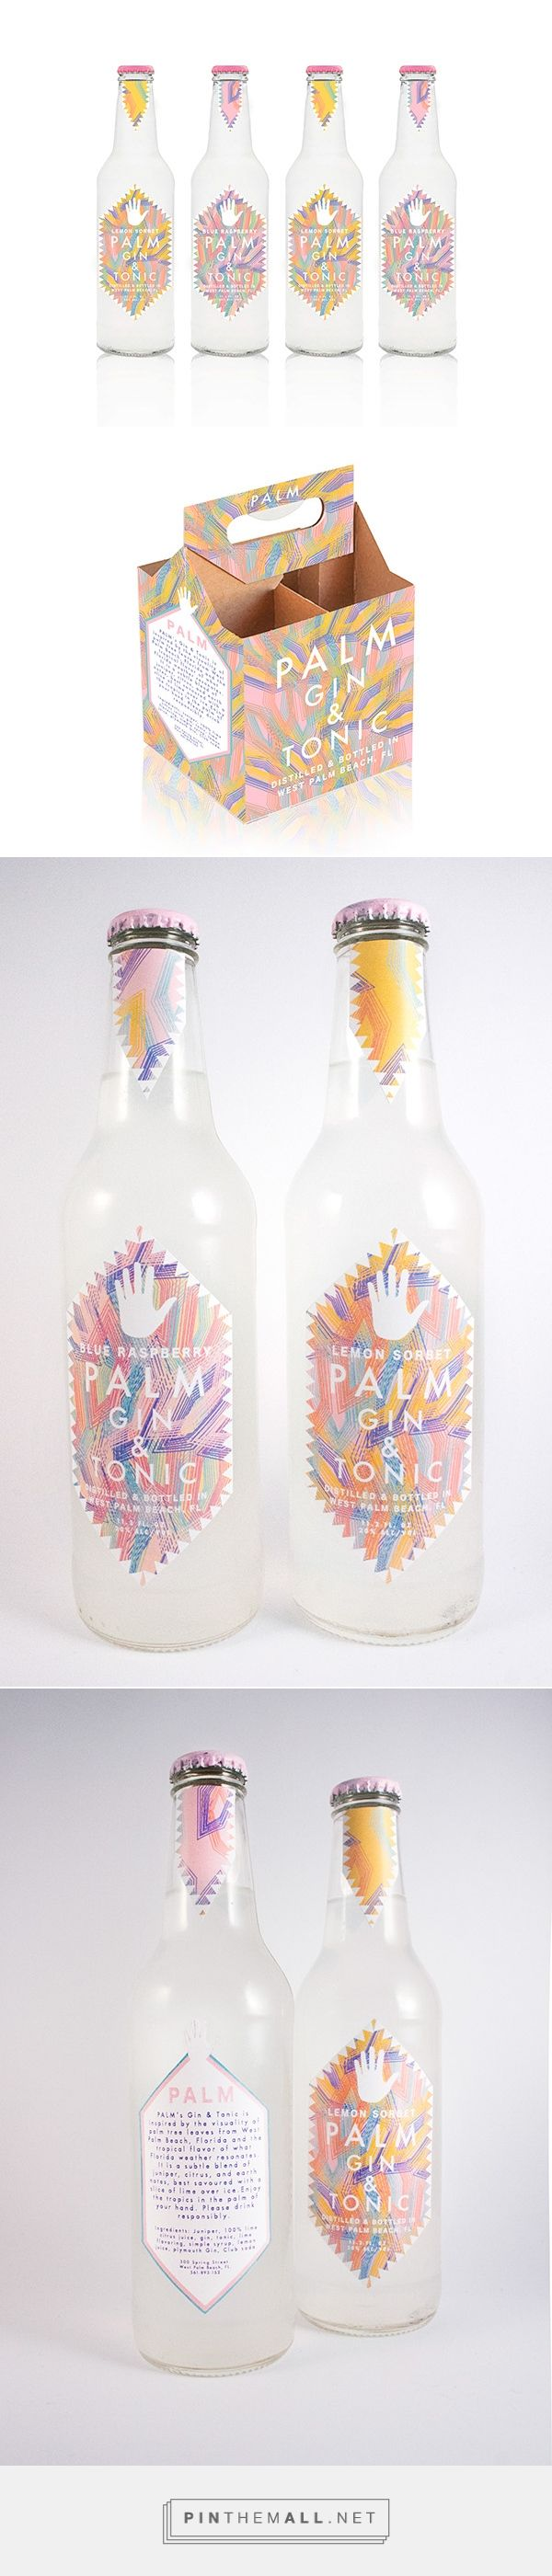 Hometown Gin and Tonic packaging on Pratt Portfolios by Jane Jun curated by Packaging Diva PD. Fun packaging project. 2015 top team packaging pin.